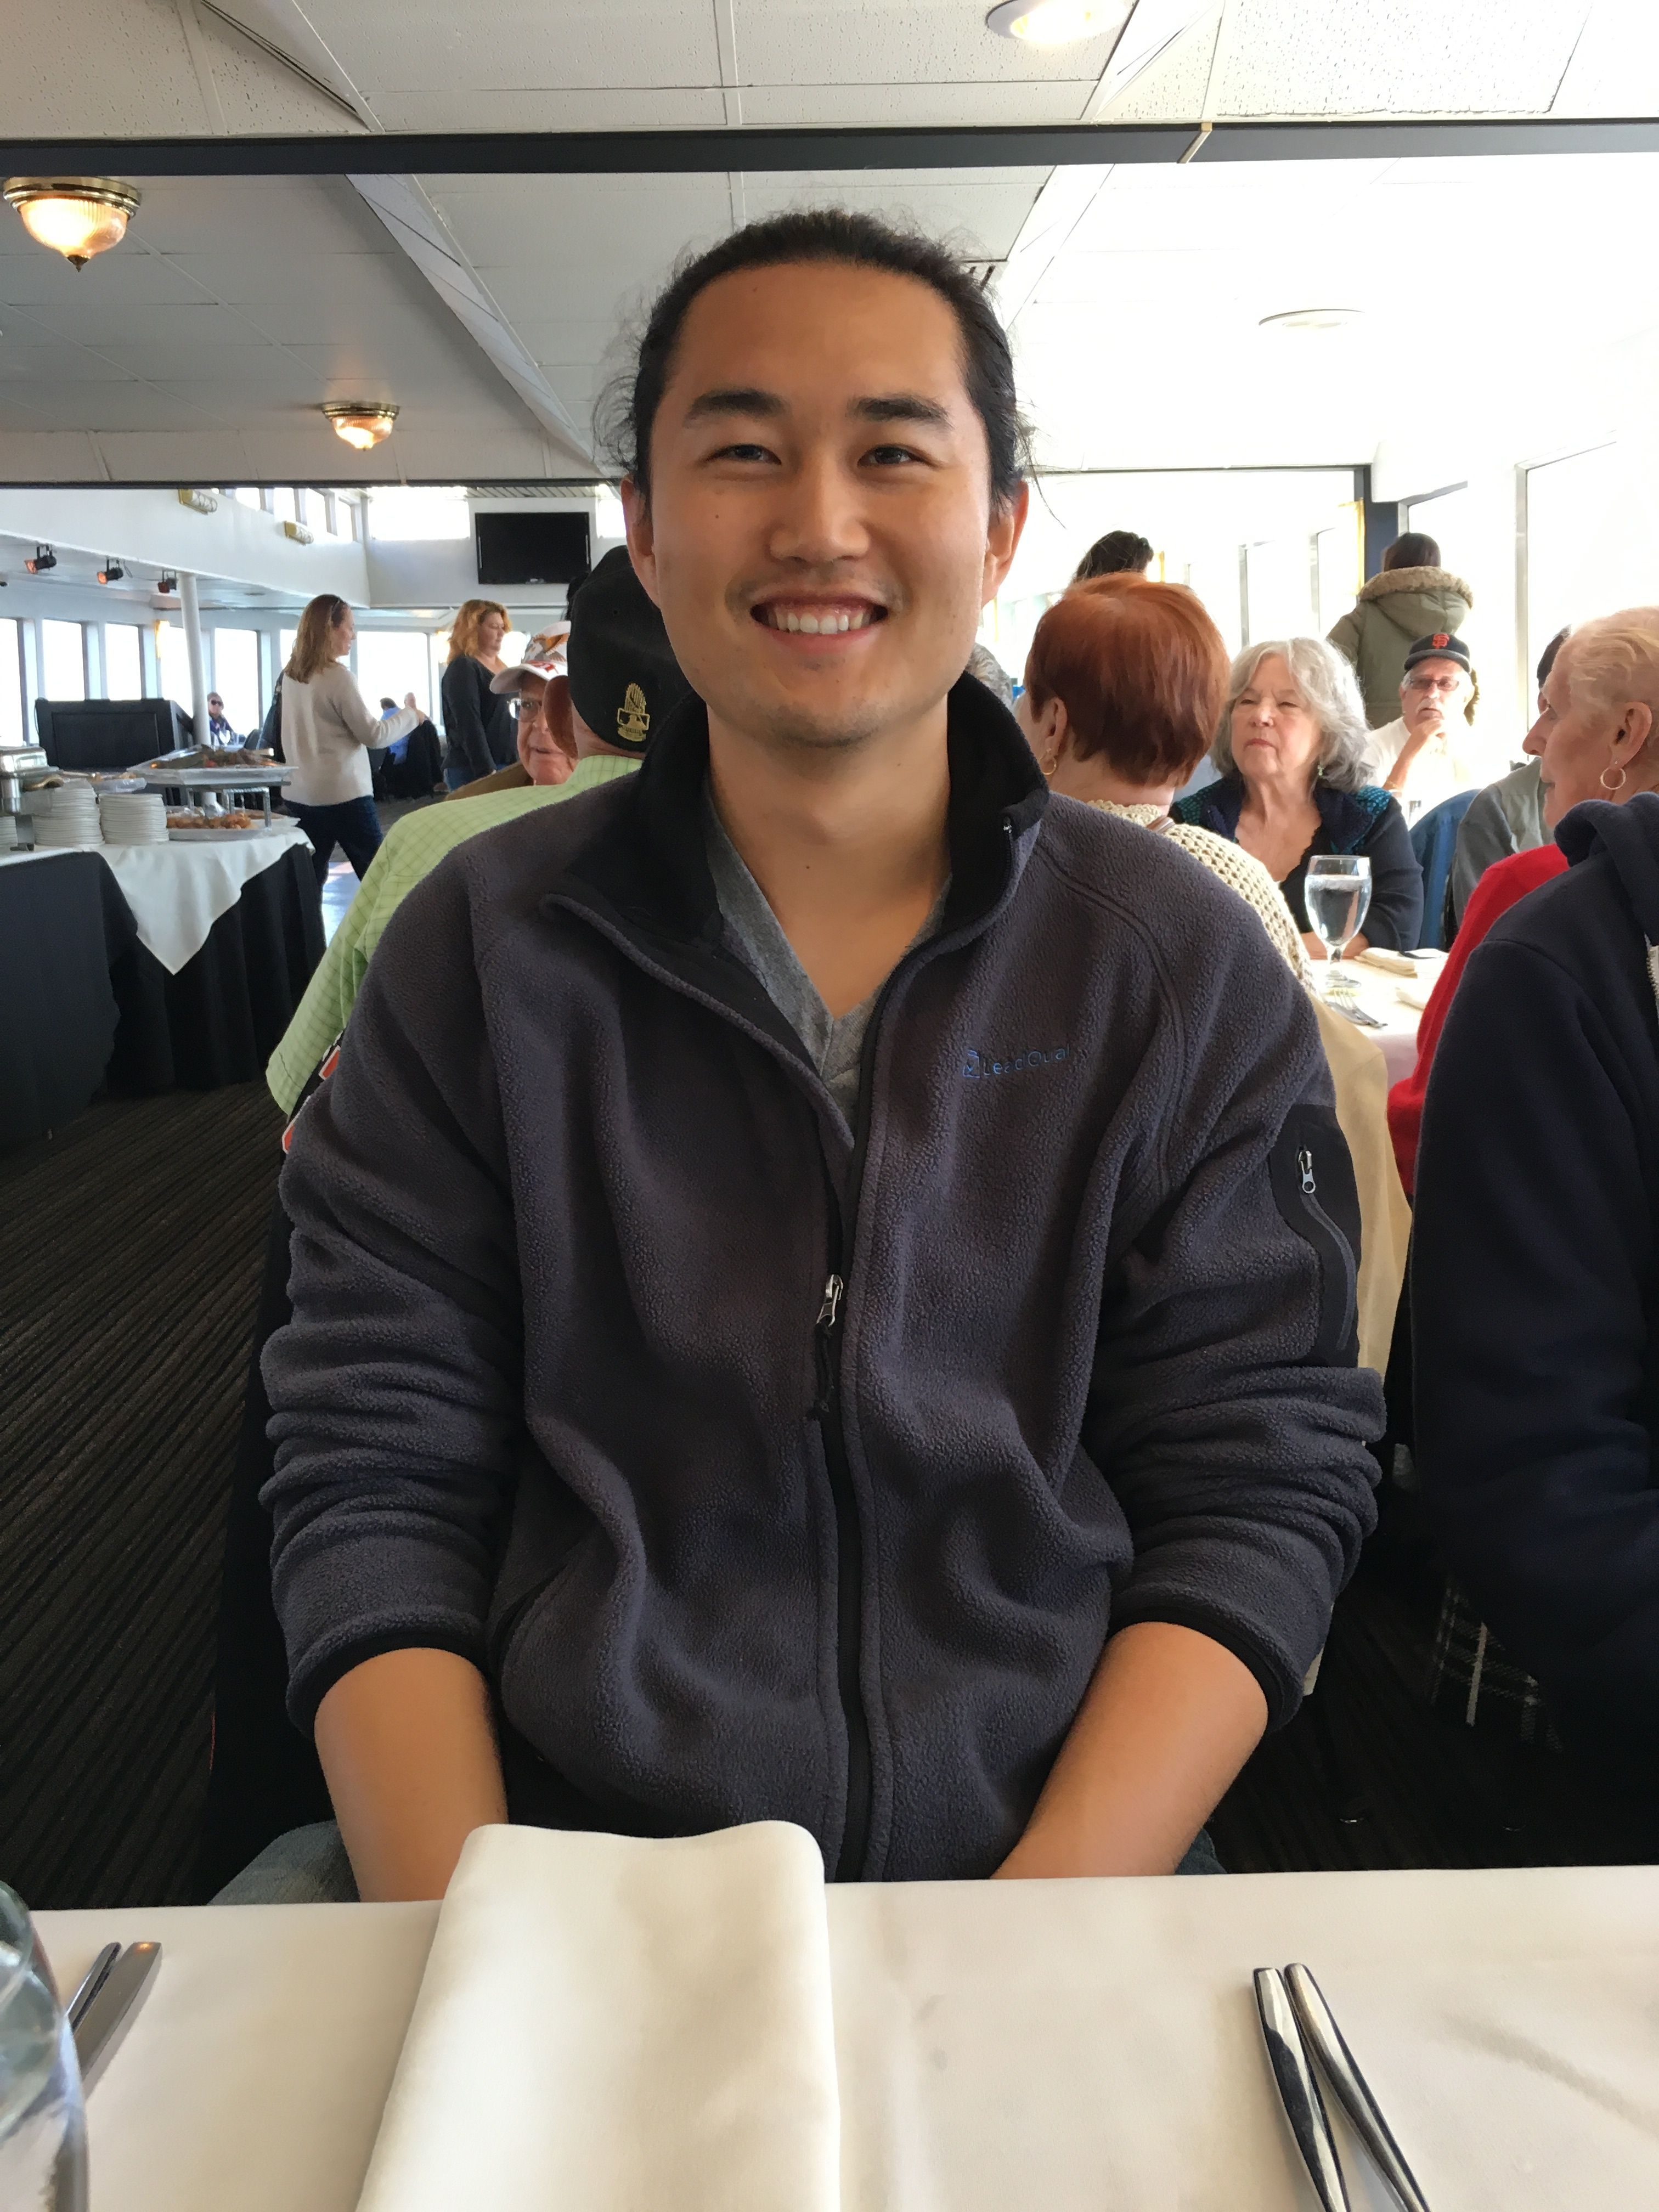 curtis bay asian single men Curtis bay online dating for curtis bay singles 1,500,000 daily active members.